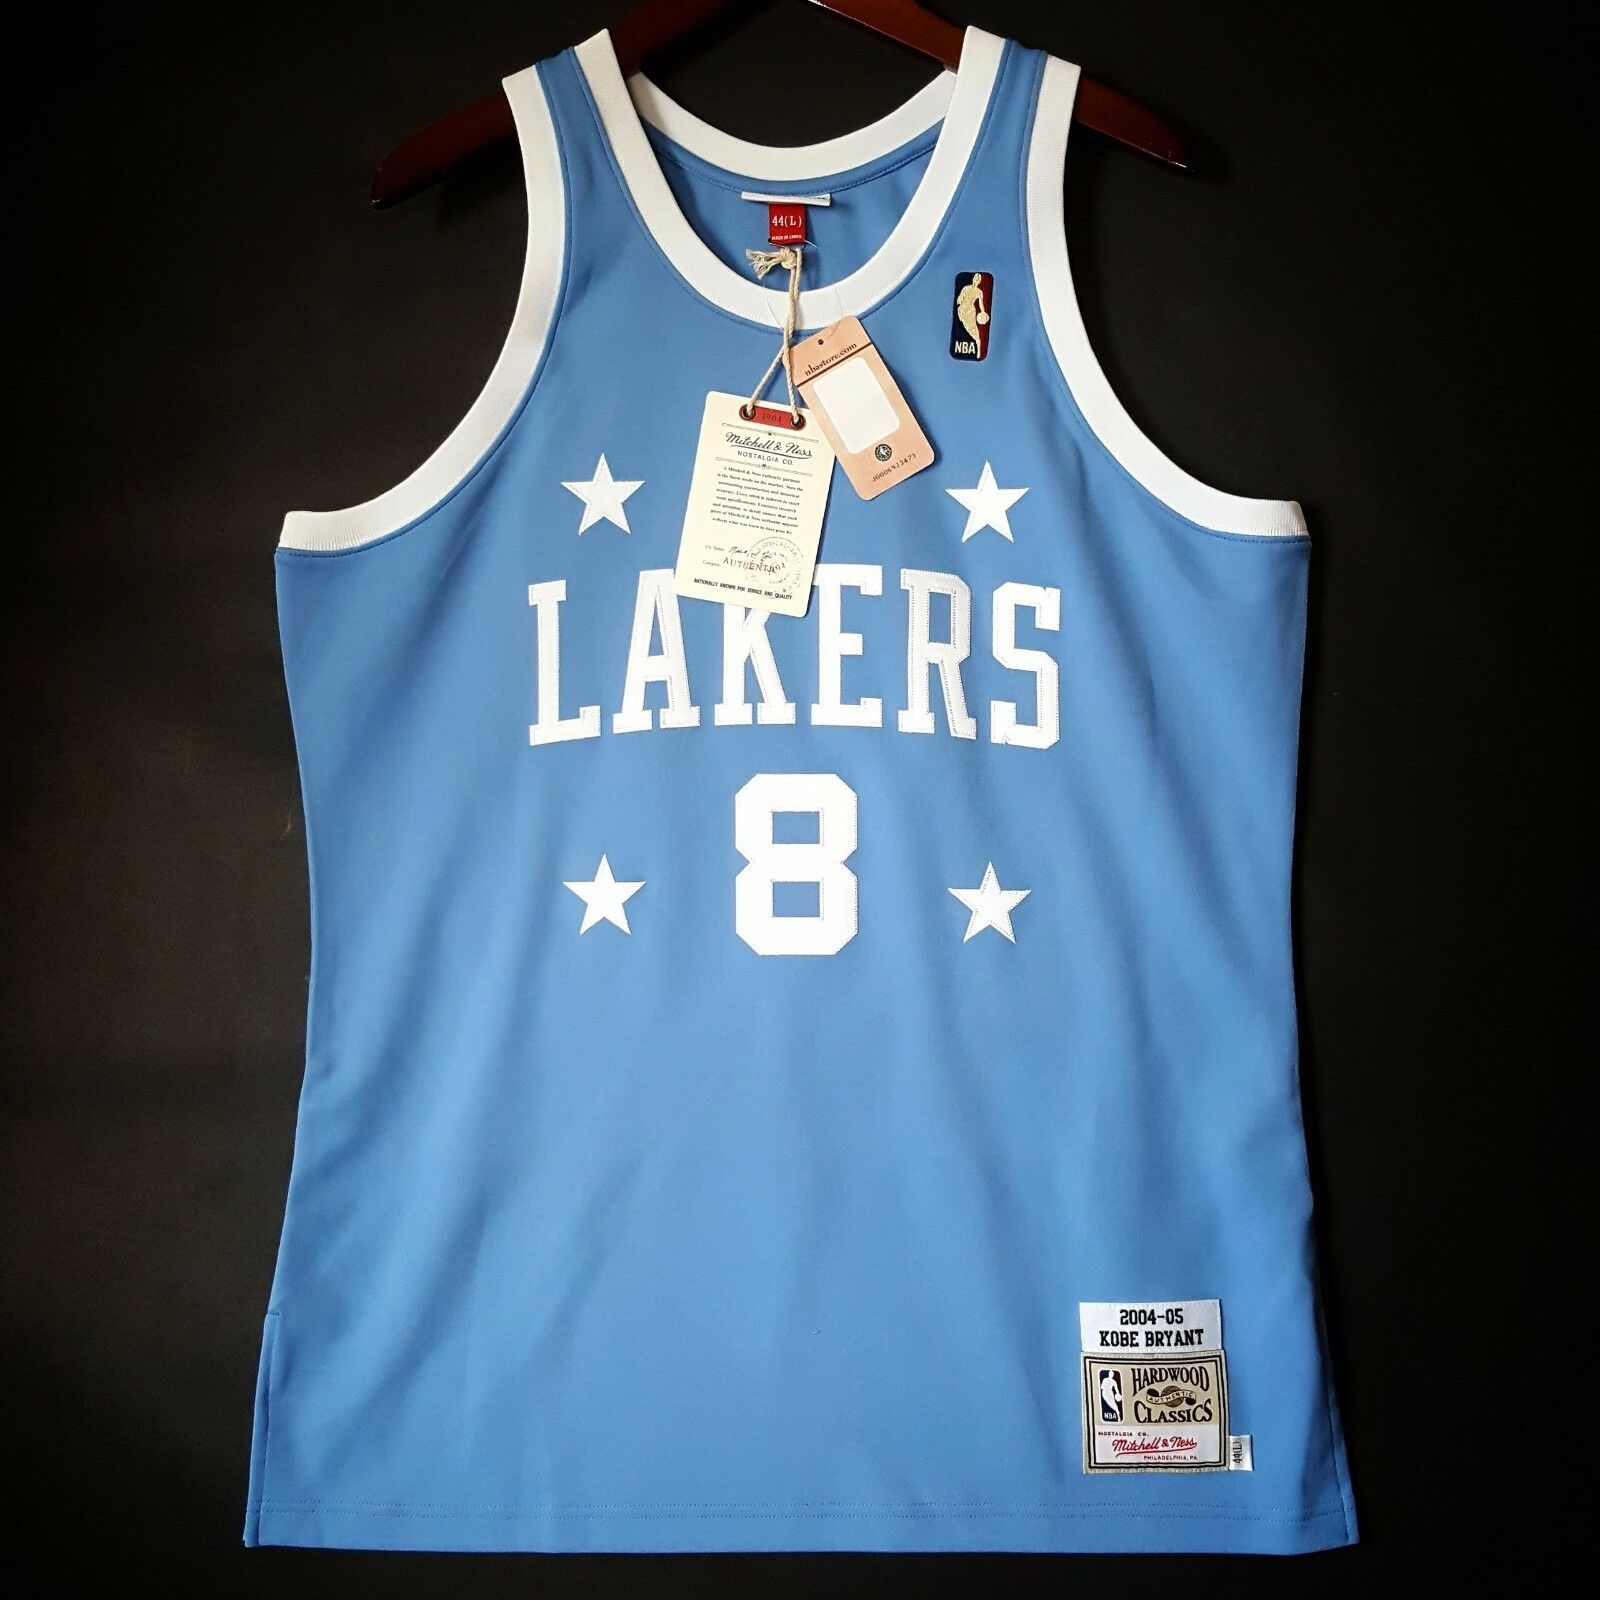 100% Authentisch Kobe Bryant Mitchell & Ness 04 05 Lakers Lakers Lakers NBA Trikot Größe 44 L 1a22d5